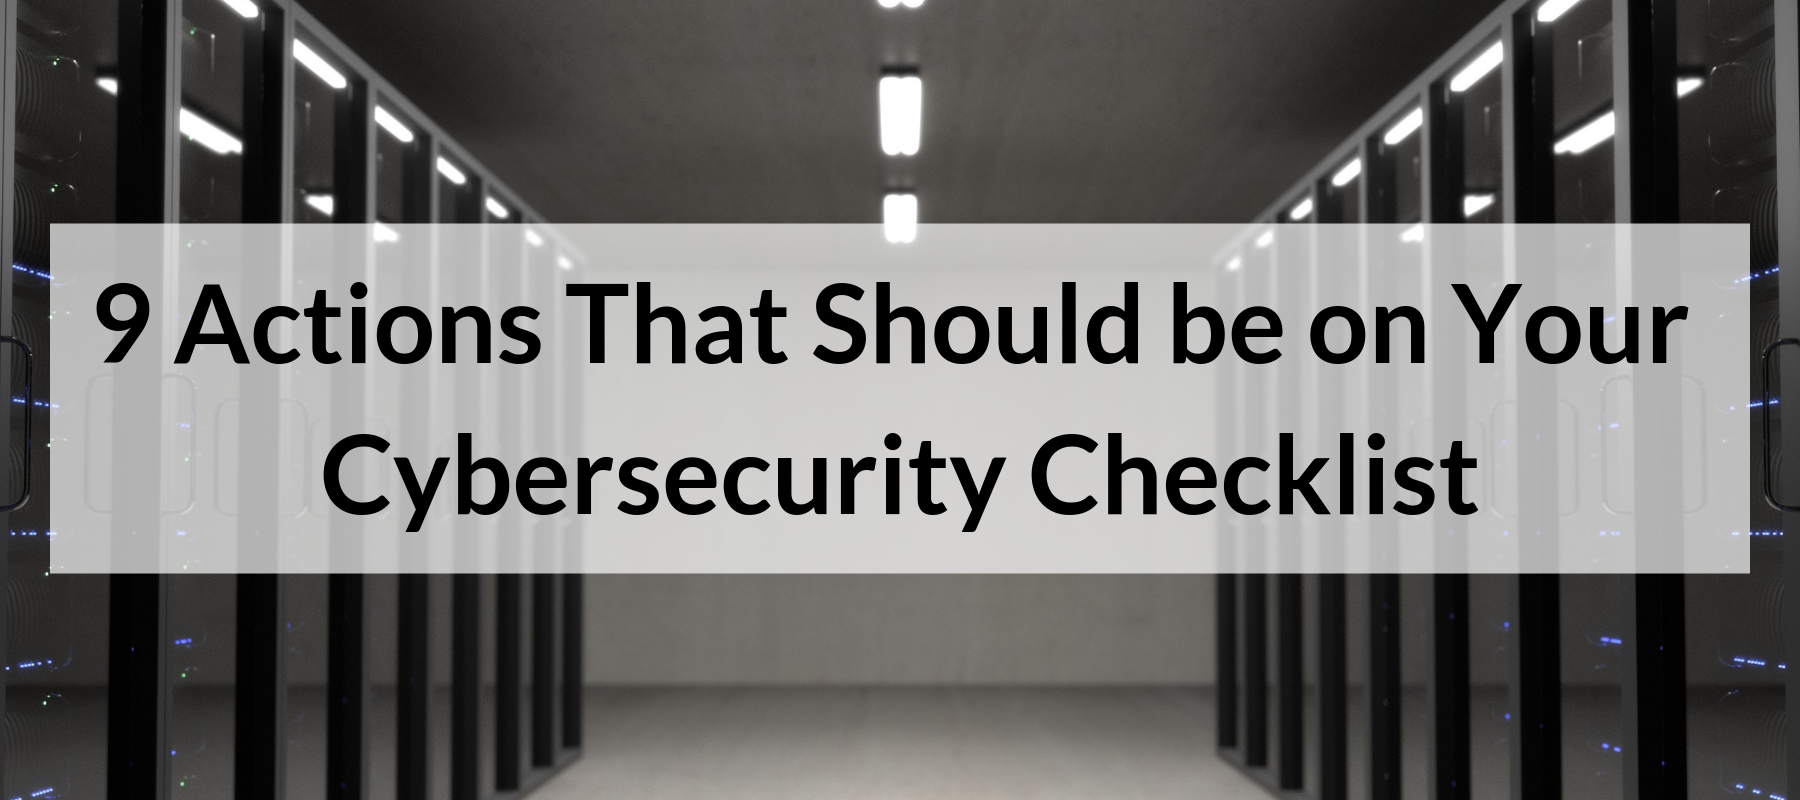 9 Actions That Should be on Your Cybersecurity Checklist